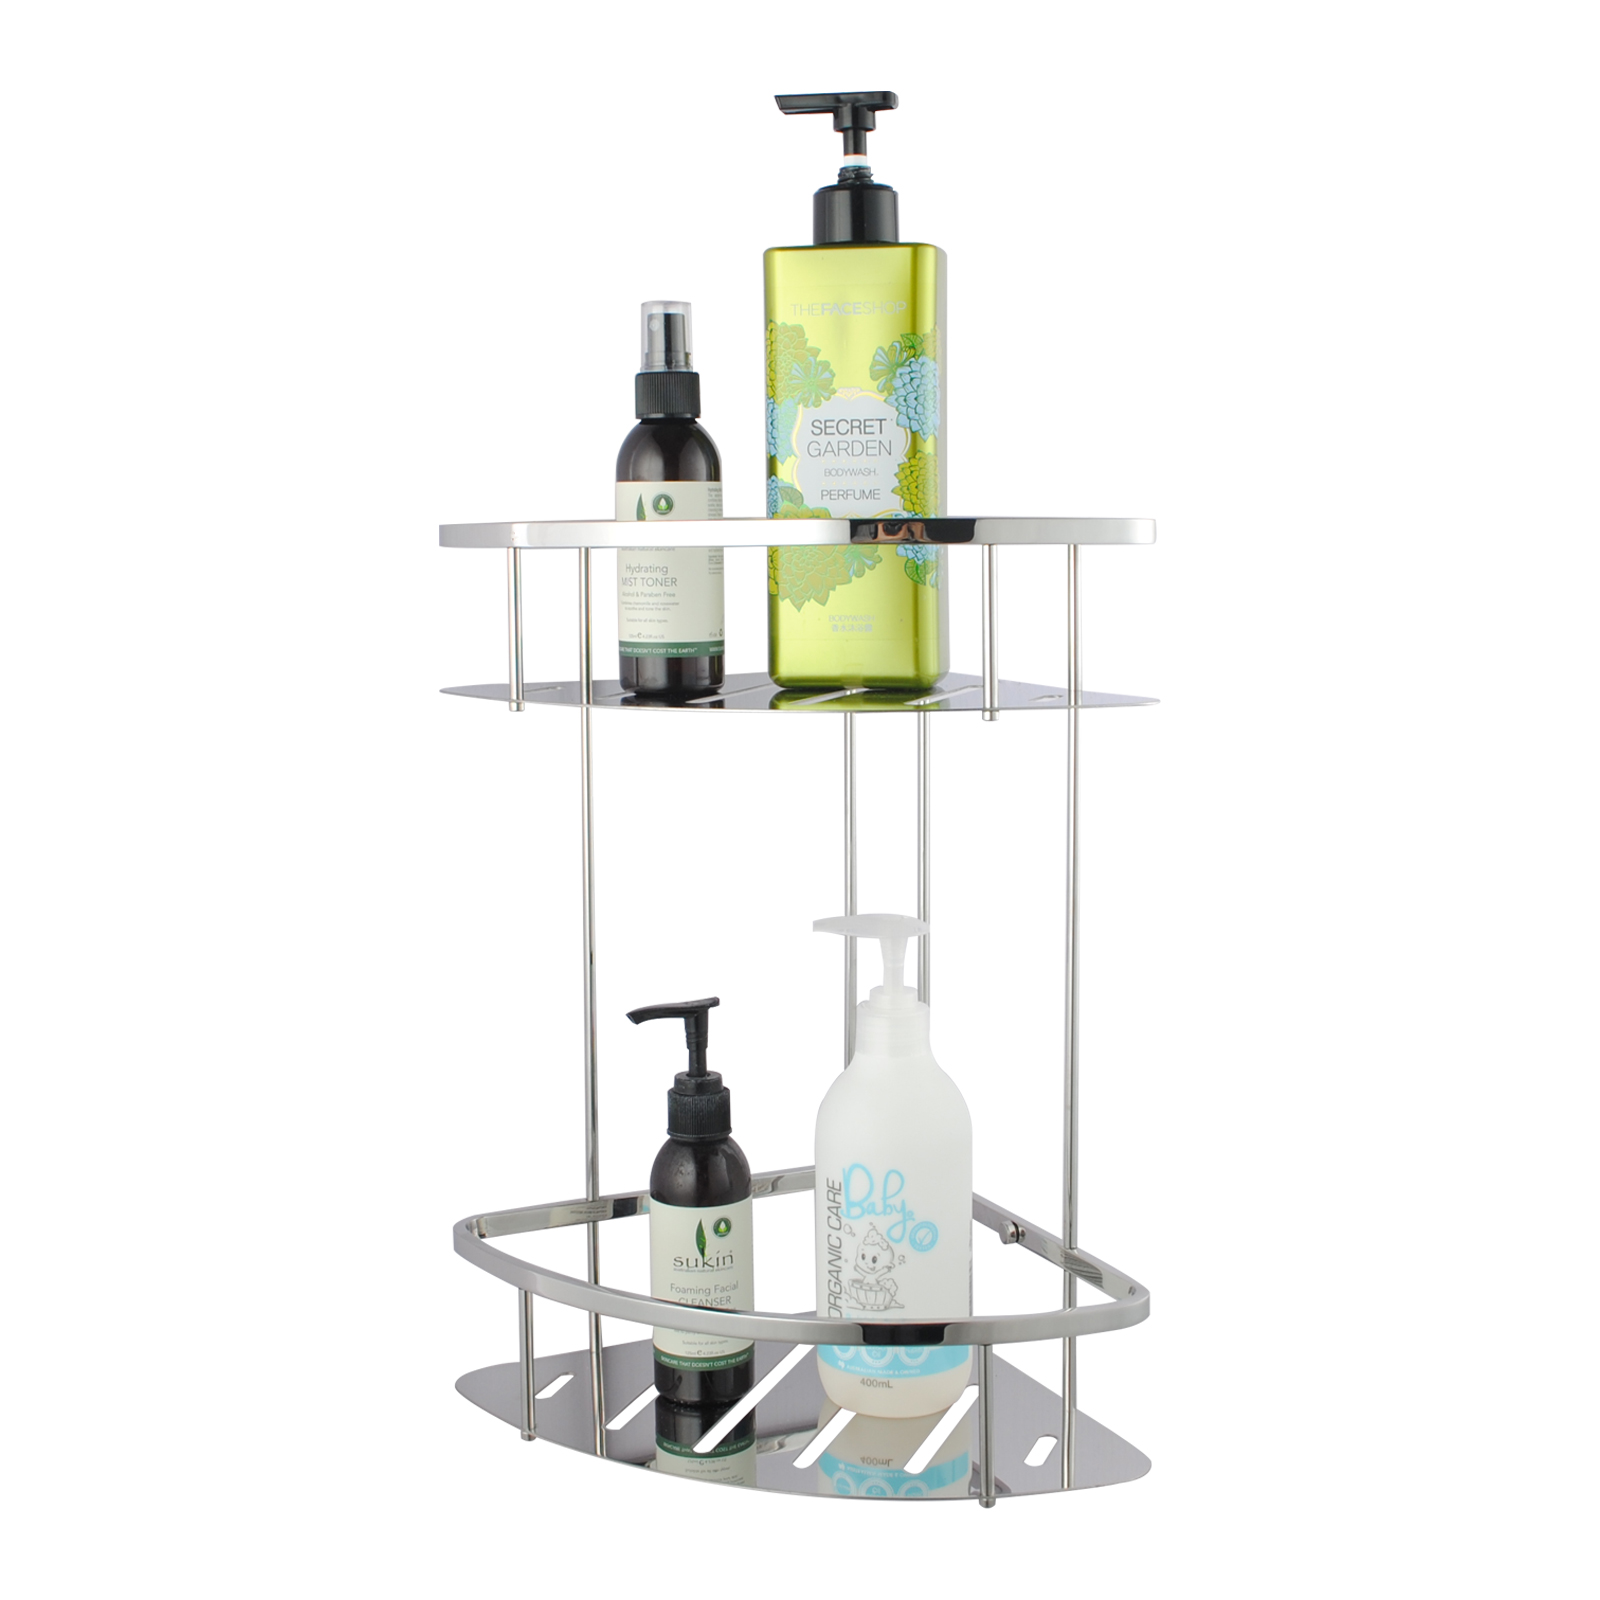 Chrome Stainless Steel 2 Tier Shower Caddy Shelf | Buy Shower & Bath ...